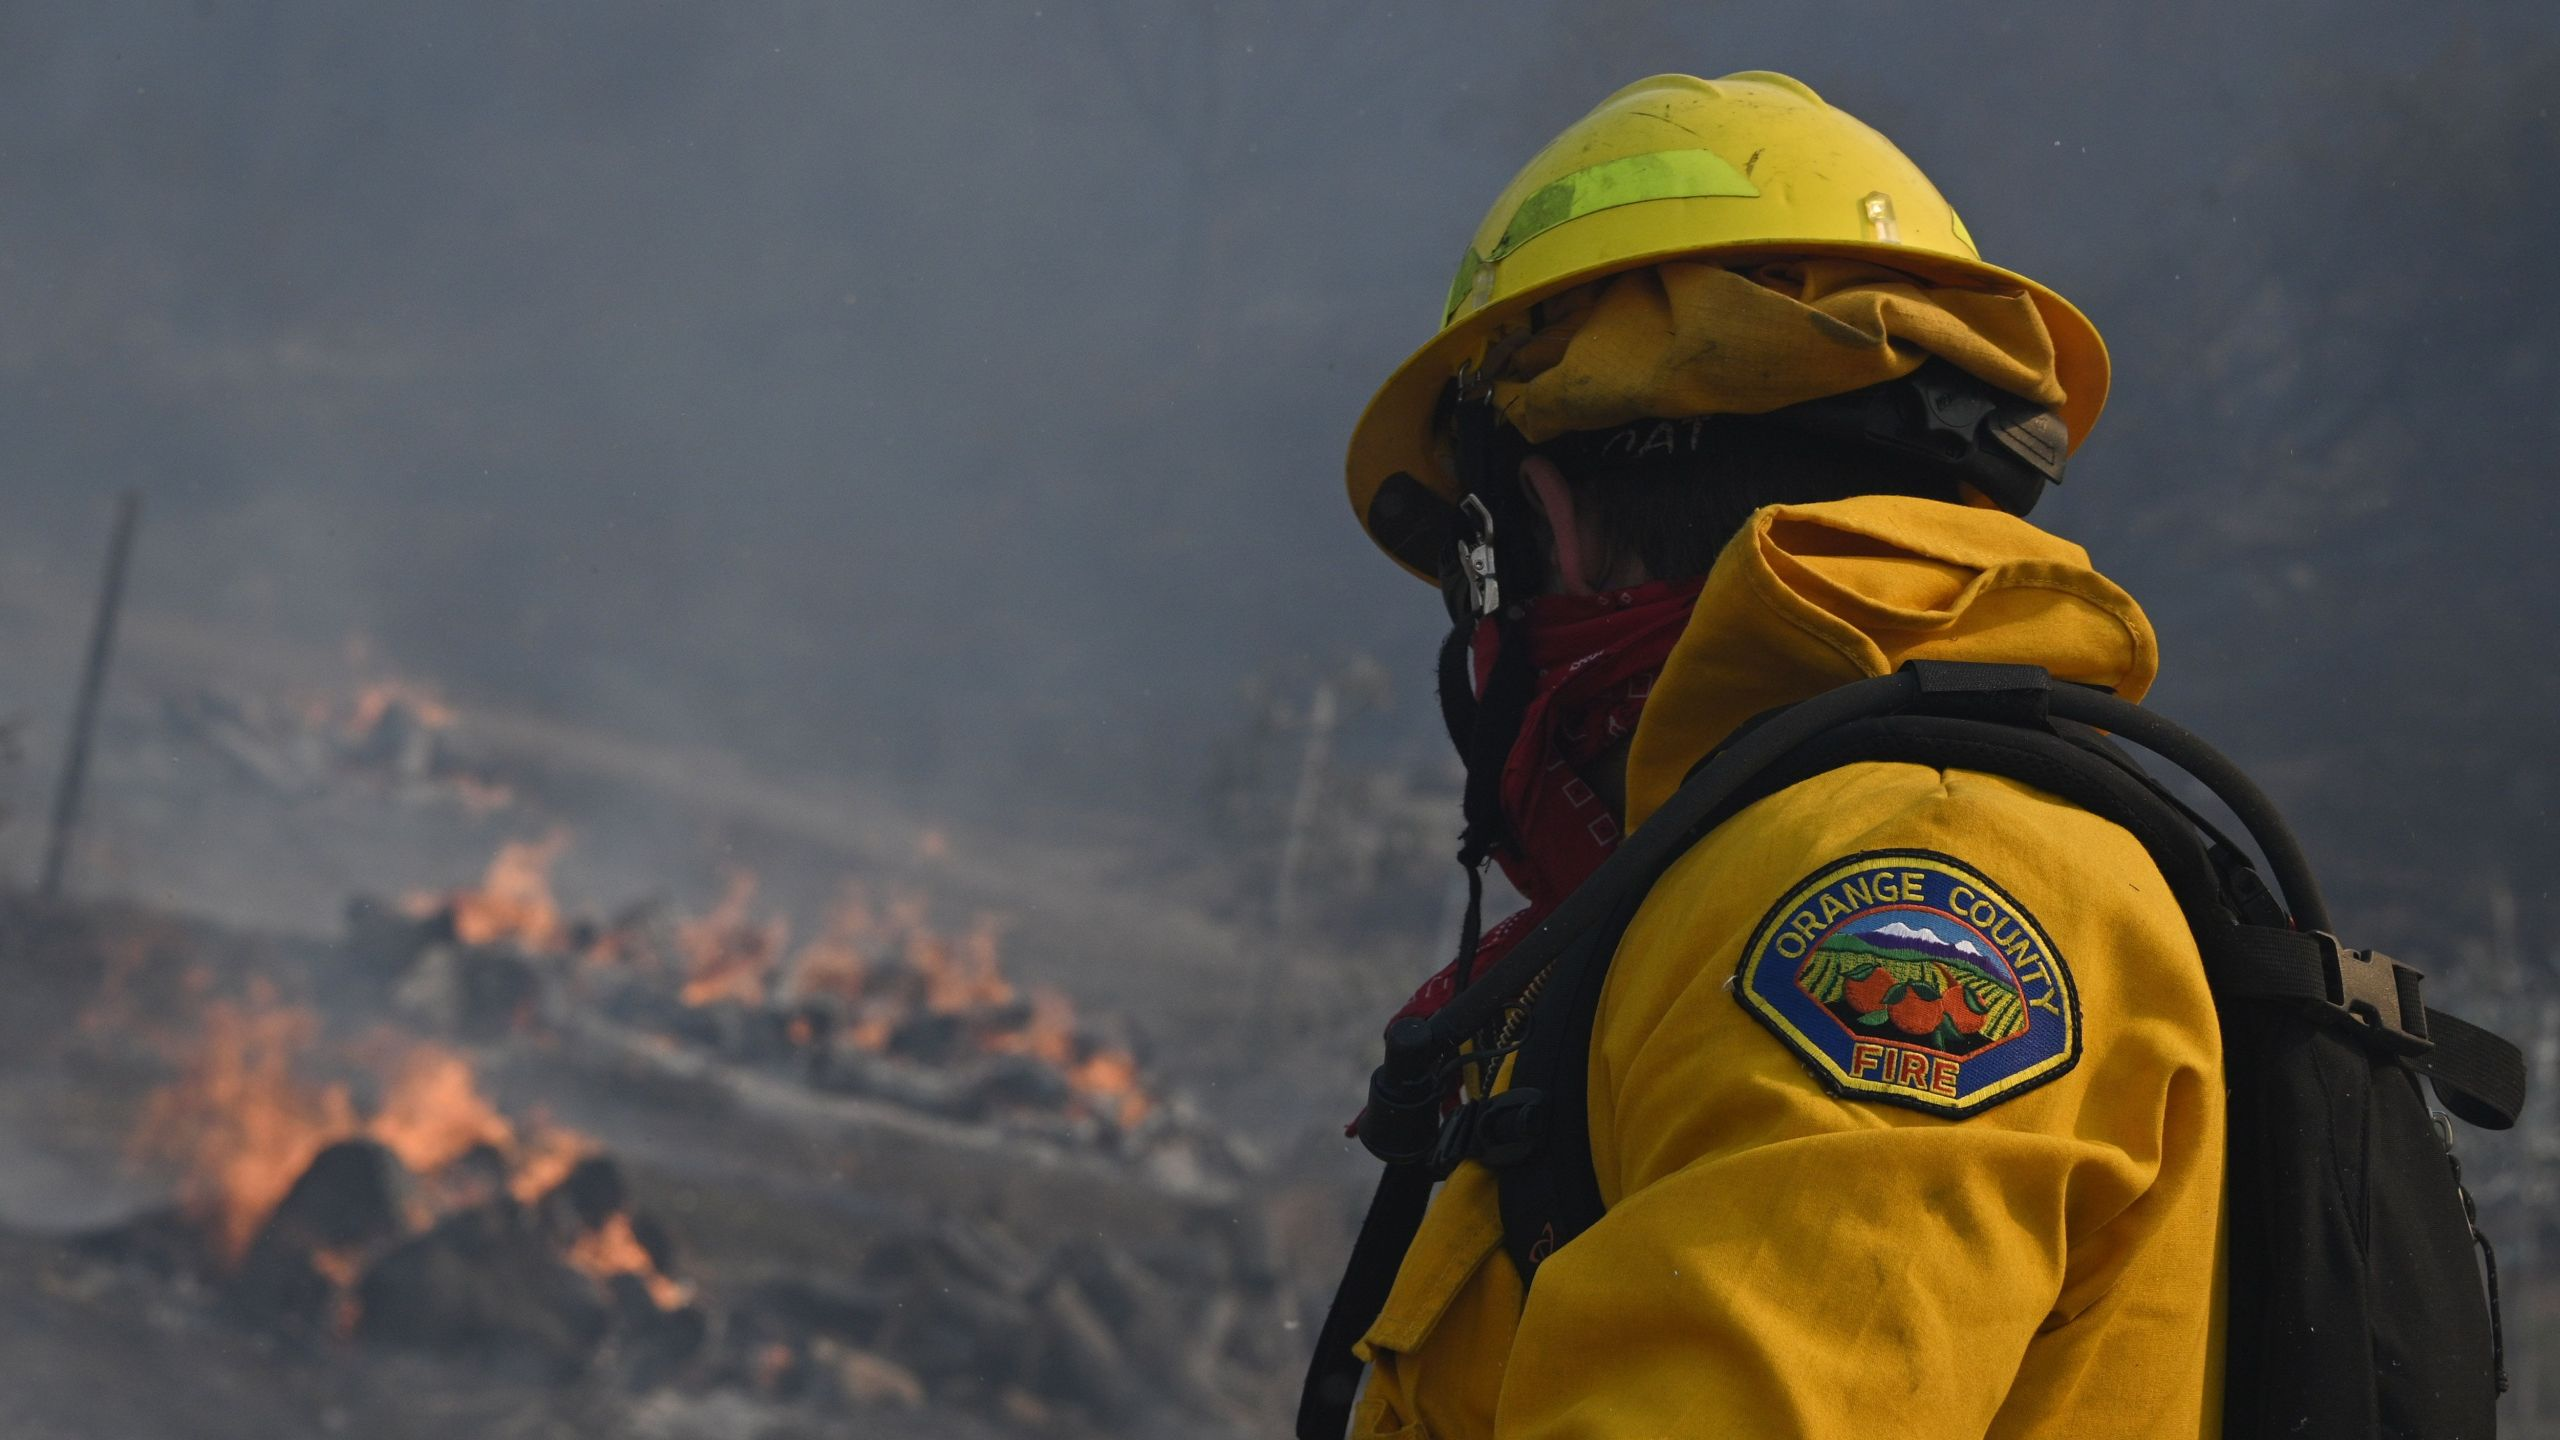 An Orange County firefighter looks for hotspots near a residential area in the Silverado Fire October 26, 2020 in Irvine, California. (ROBYN BECK/AFP via Getty Images)